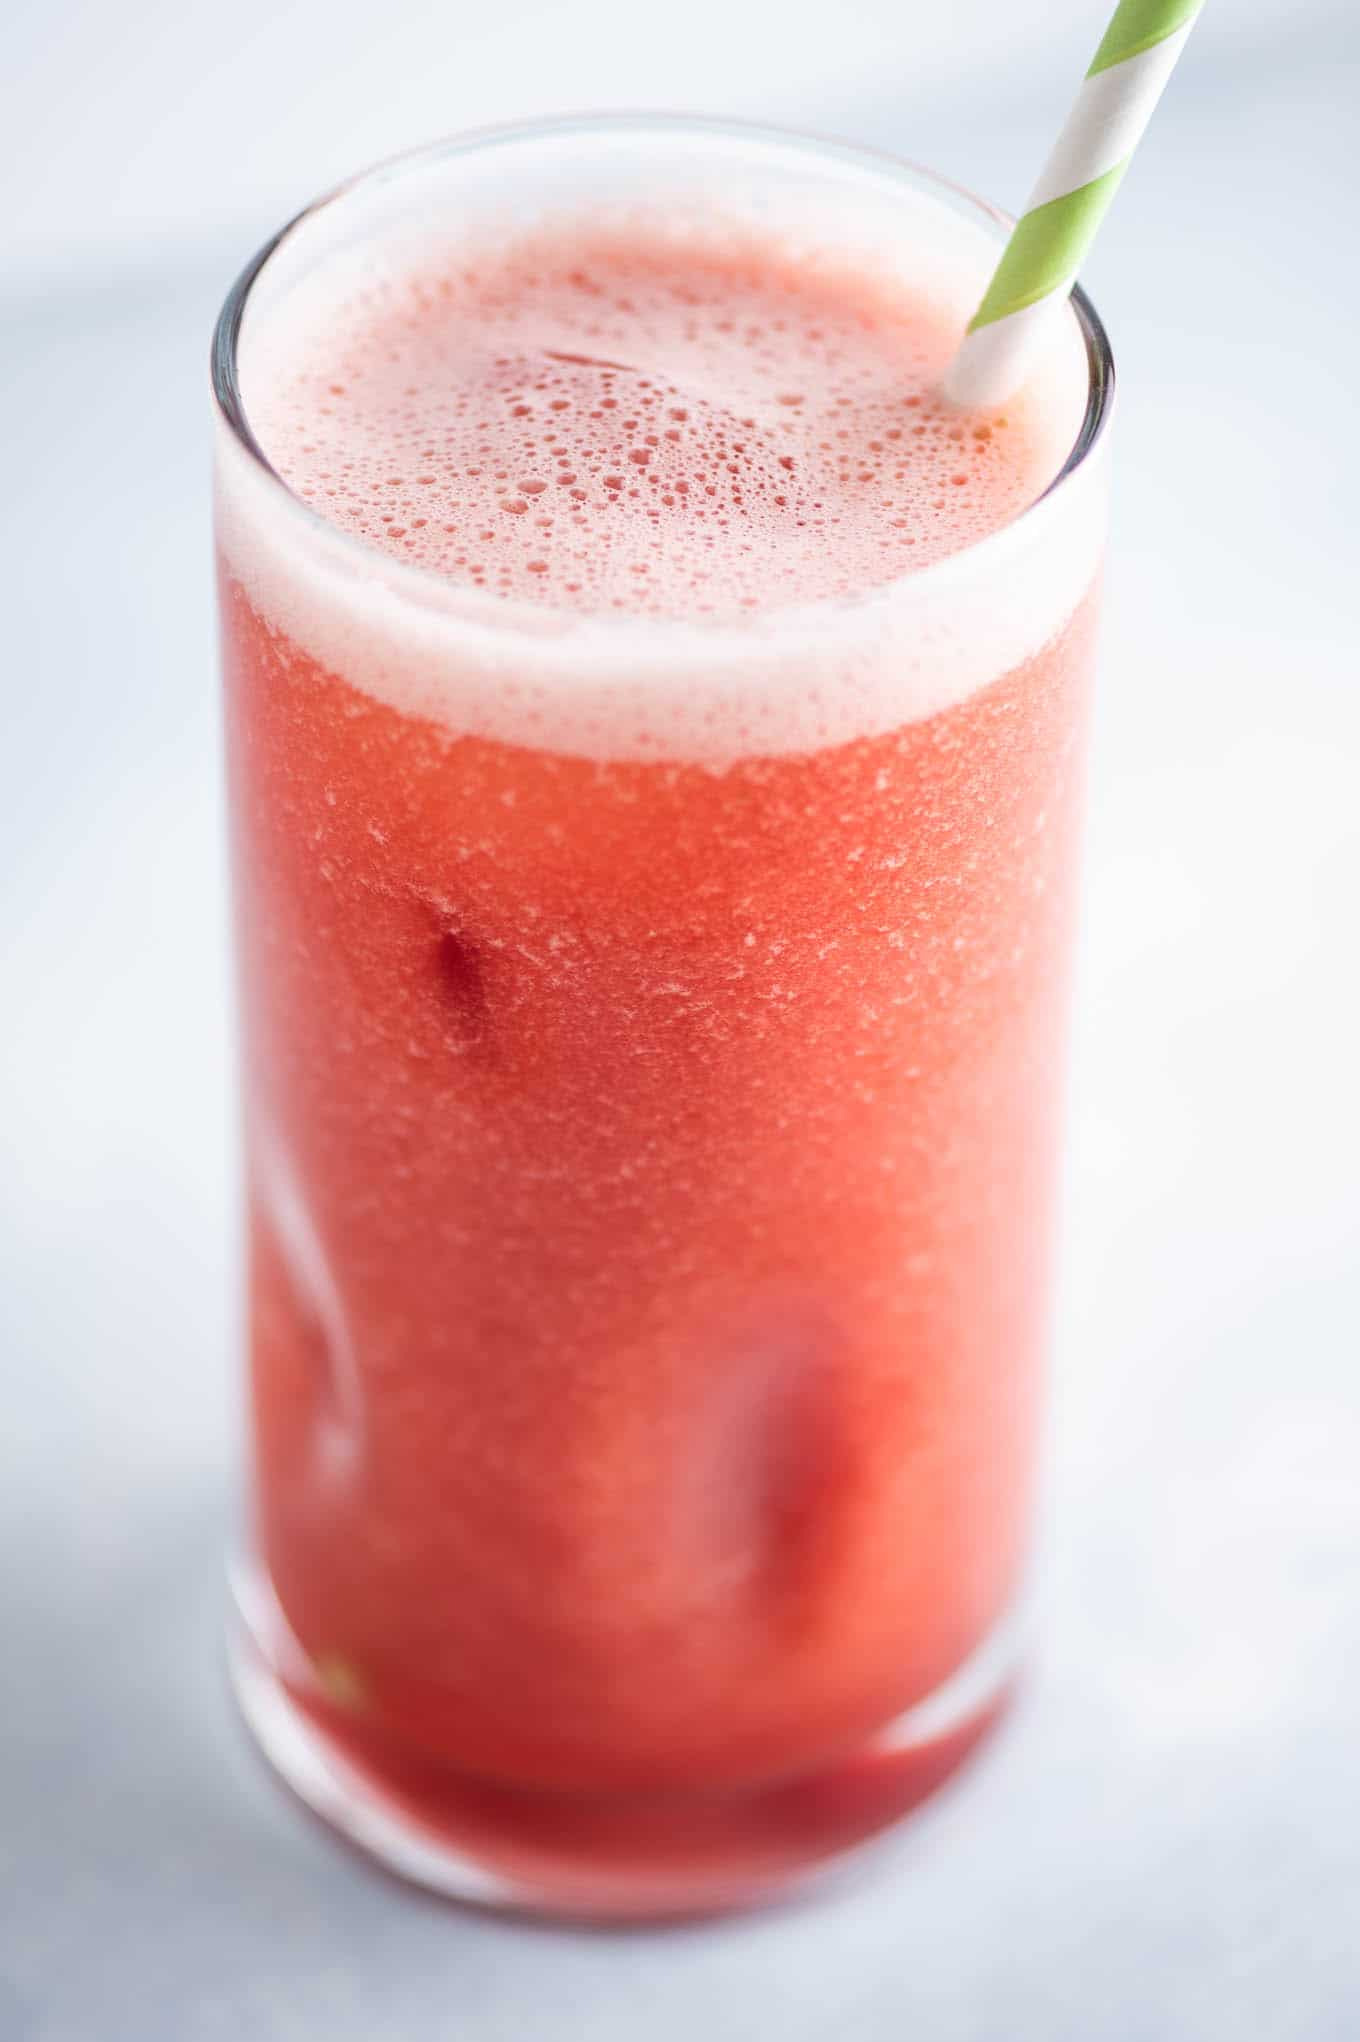 homemade watermelon juice in a glass